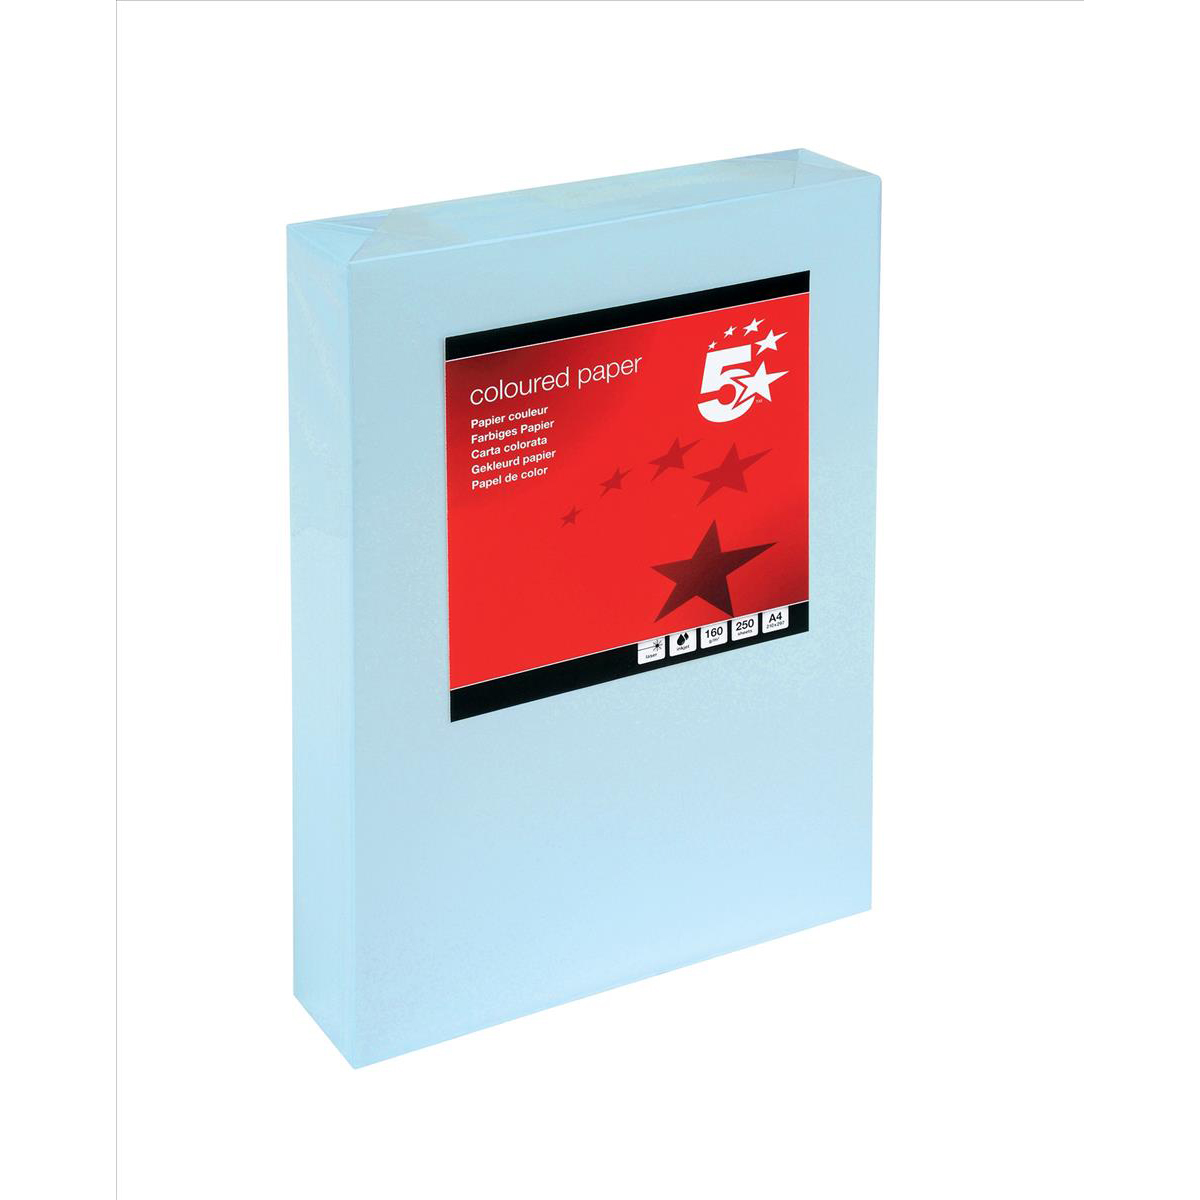 Card (160g+) 5 Star Office Coloured Card Multifunctional 160gsm A4 Light Blue 250 Sheets